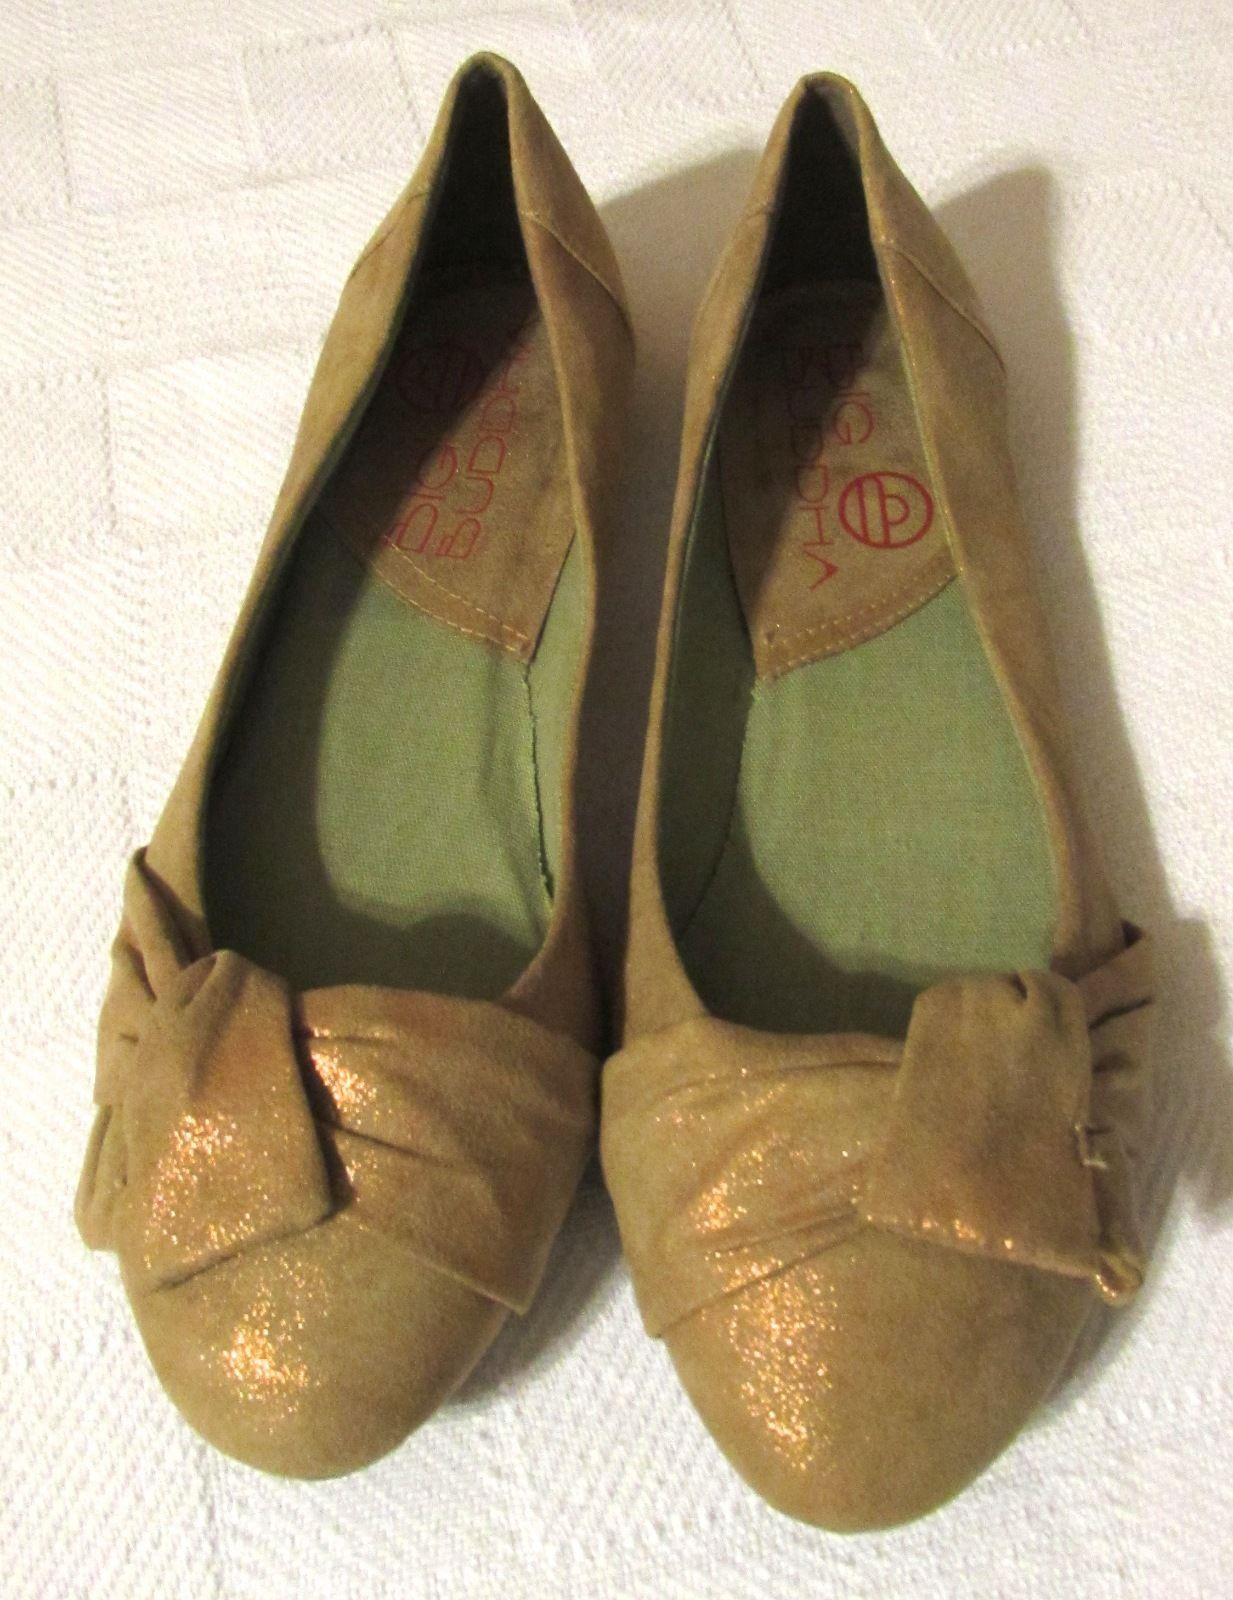 Big Buddha Women's Brush Gold Shimmer Fabric Ballet Flats w/Bow Size: 8.5 M